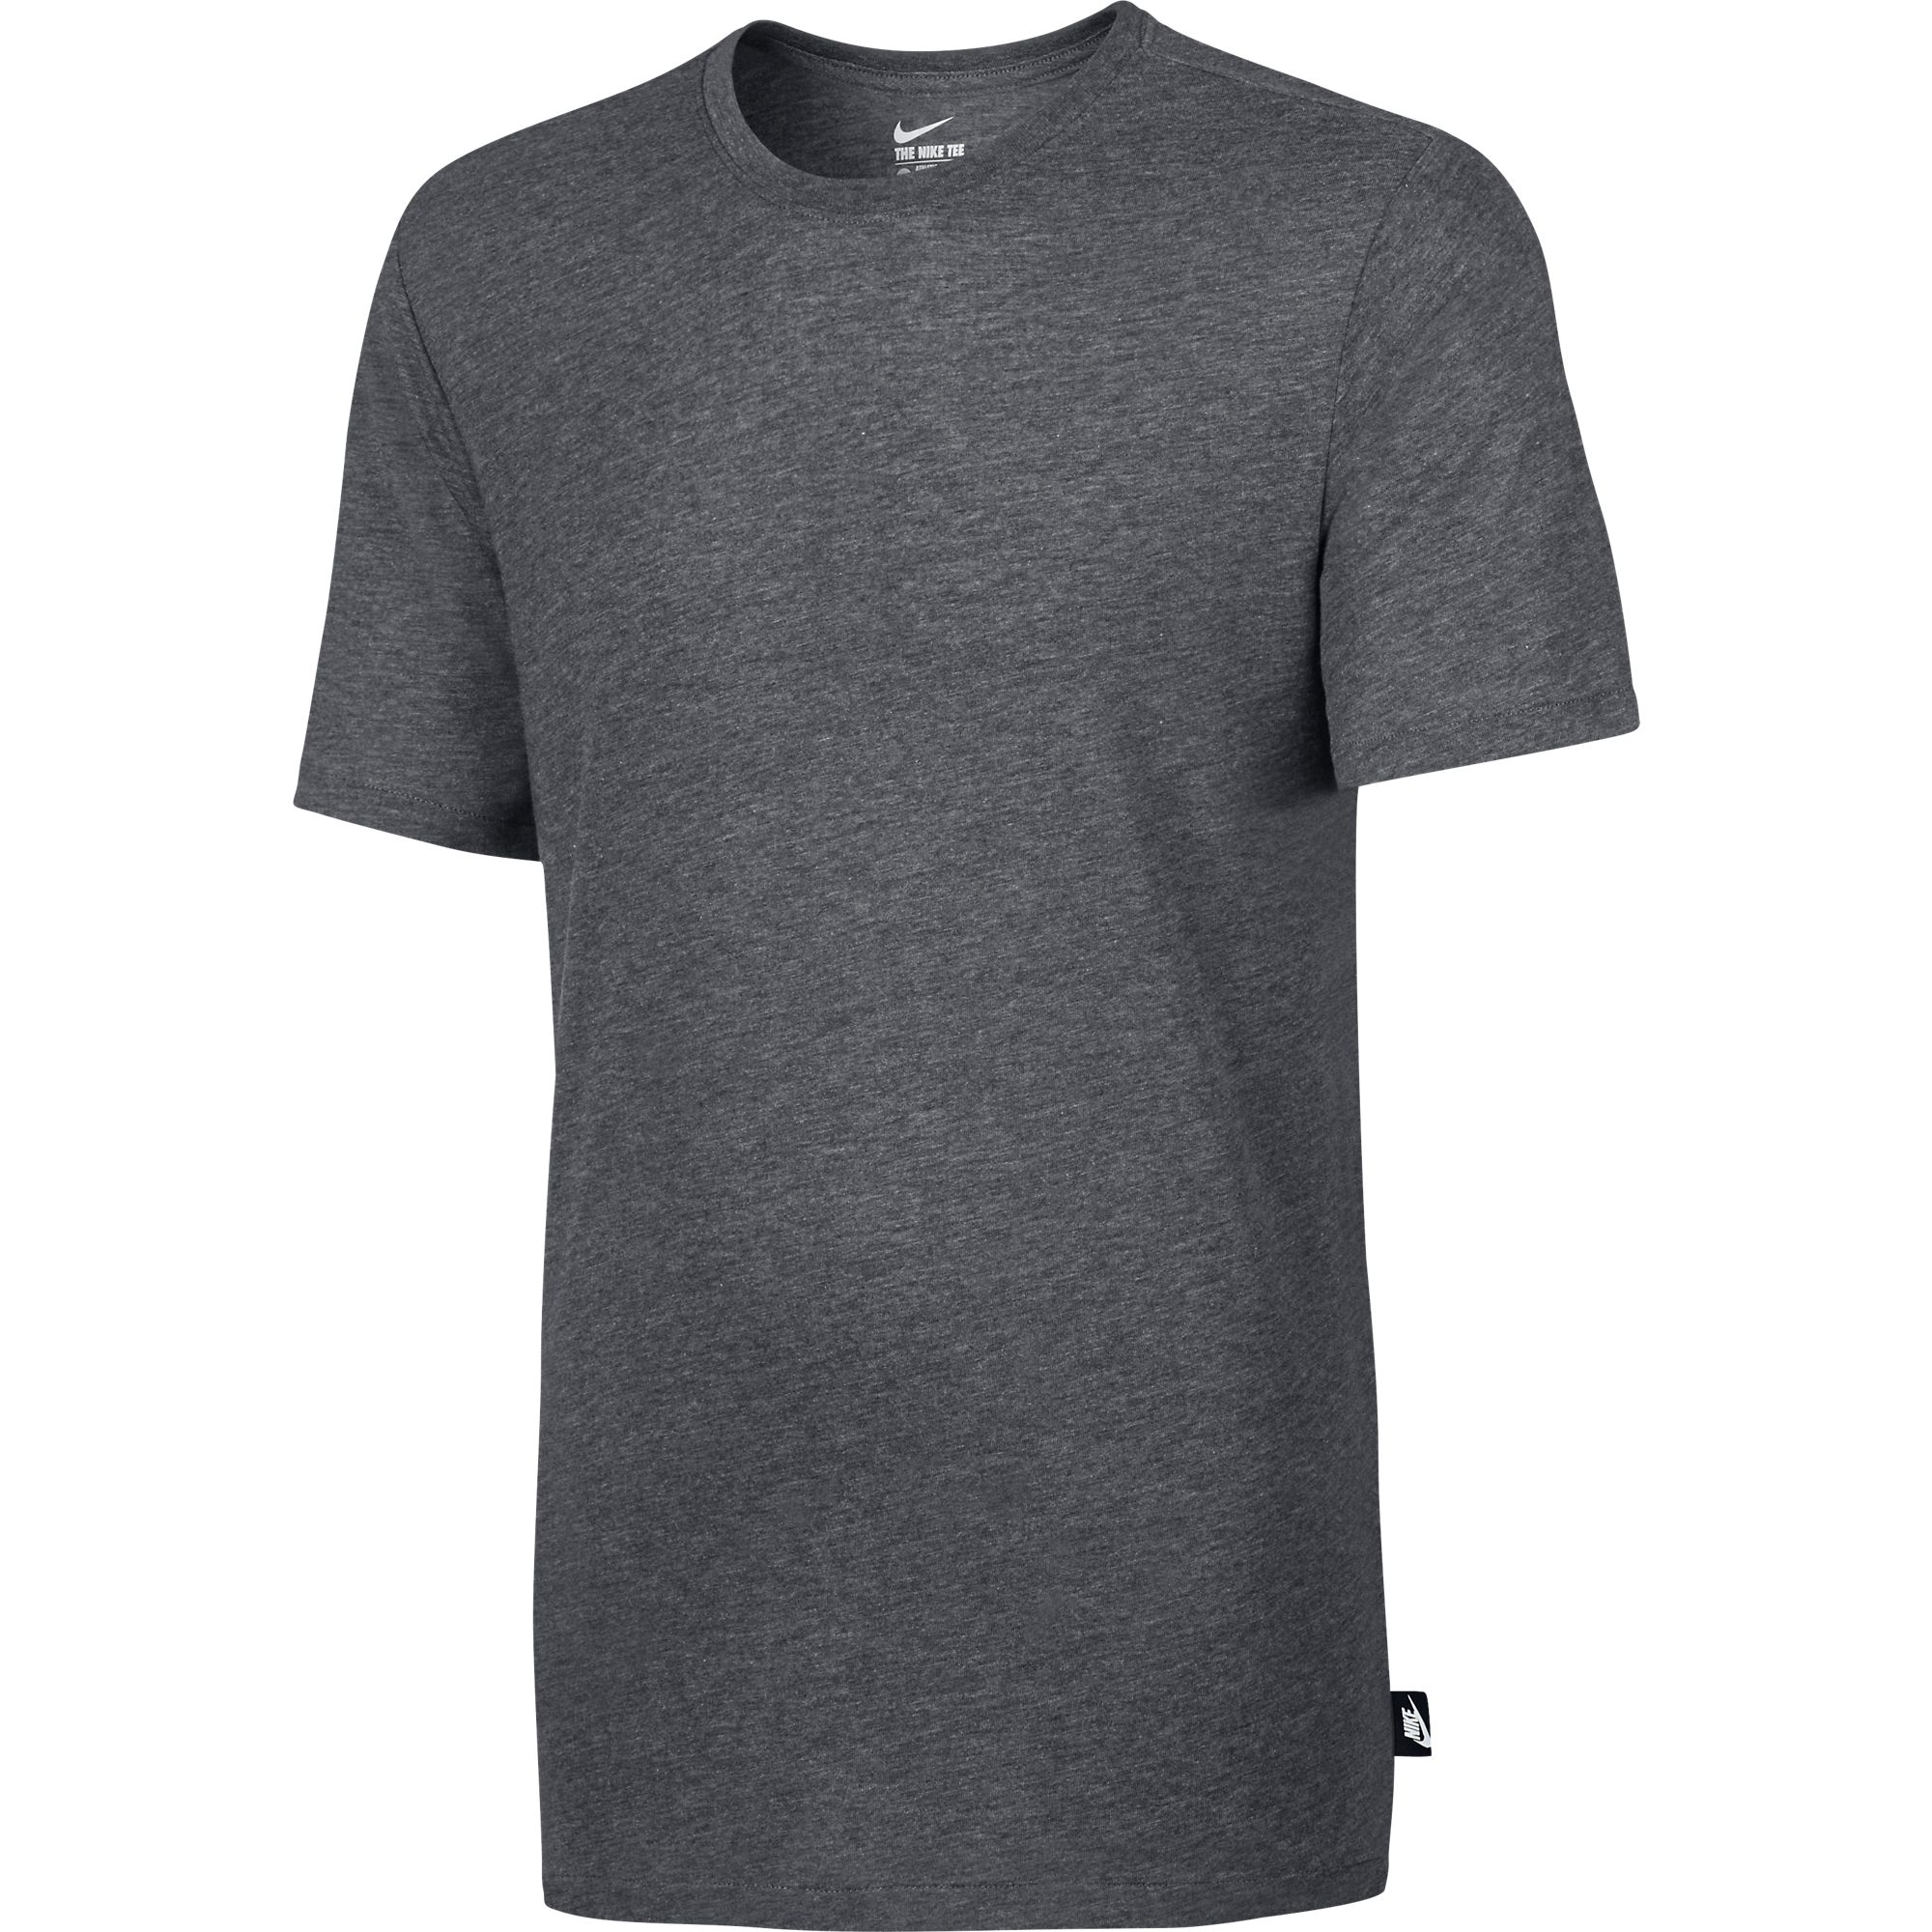 Nike Solid Futura Men/'s Casual Athletic T-Shirt Black//White 708336-010